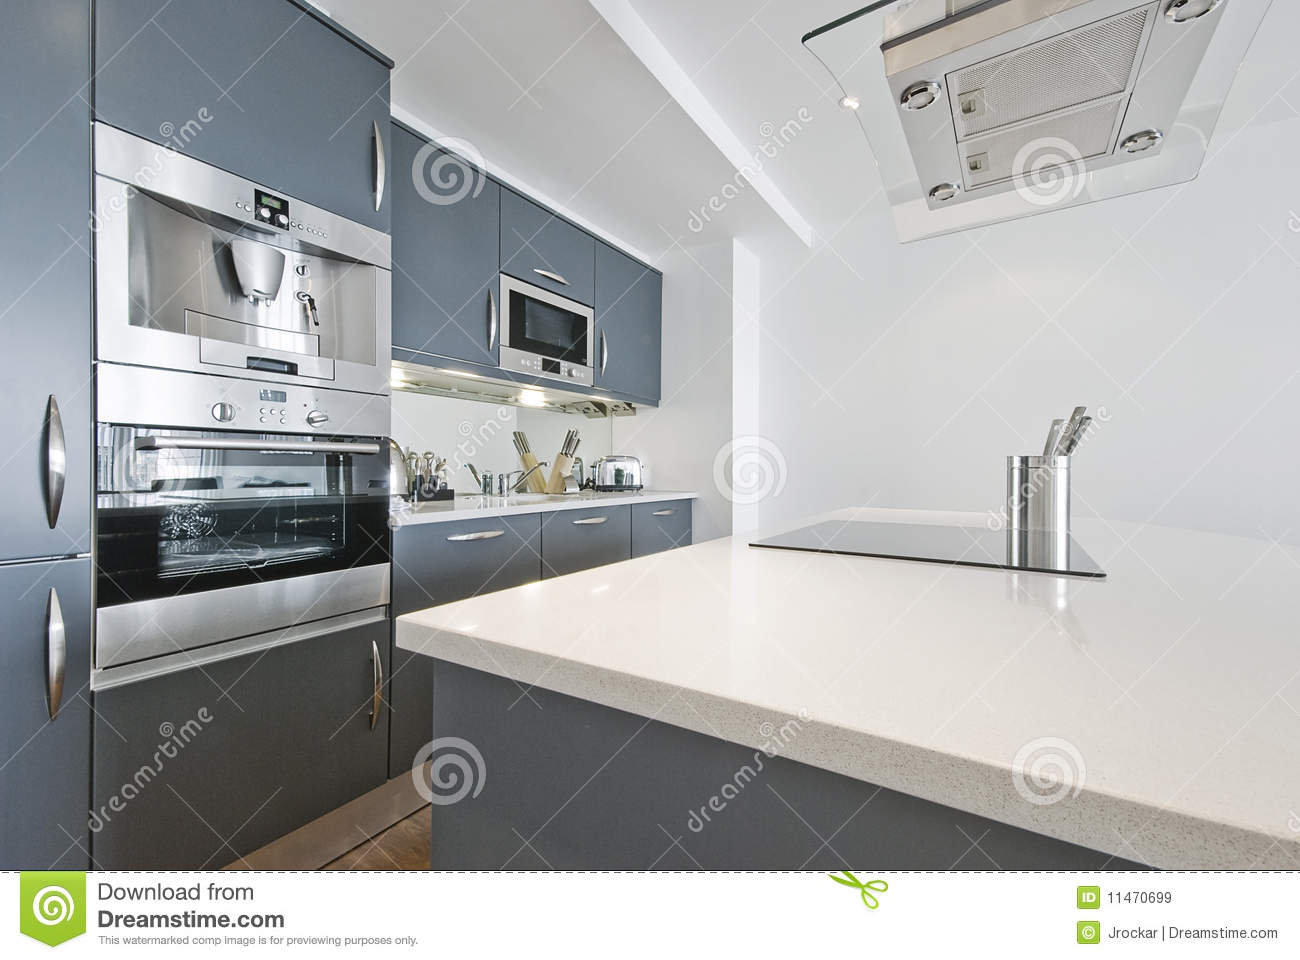 Ultra modern kitchen stock image. Image of aluminum, apartment ... on modern kitchen lighting tips, modern kitchen accents, modern kitchen apartments, modern kitchen collectibles, modern kitchen cooktop hoods, modern kitchen sinks, modern kitchen cabinets, modern kitchen trim, modern kitchen accessories, modern kitchen drawers, modern kitchen chairs, modern dorm kitchen, modern kitchen food, bathroom appliances, modern kitchen design ideas, modern kitchen island stools, modern kitchen glass, modern kitchen refrigerators, modern kitchen materials, modern kitchen concrete,